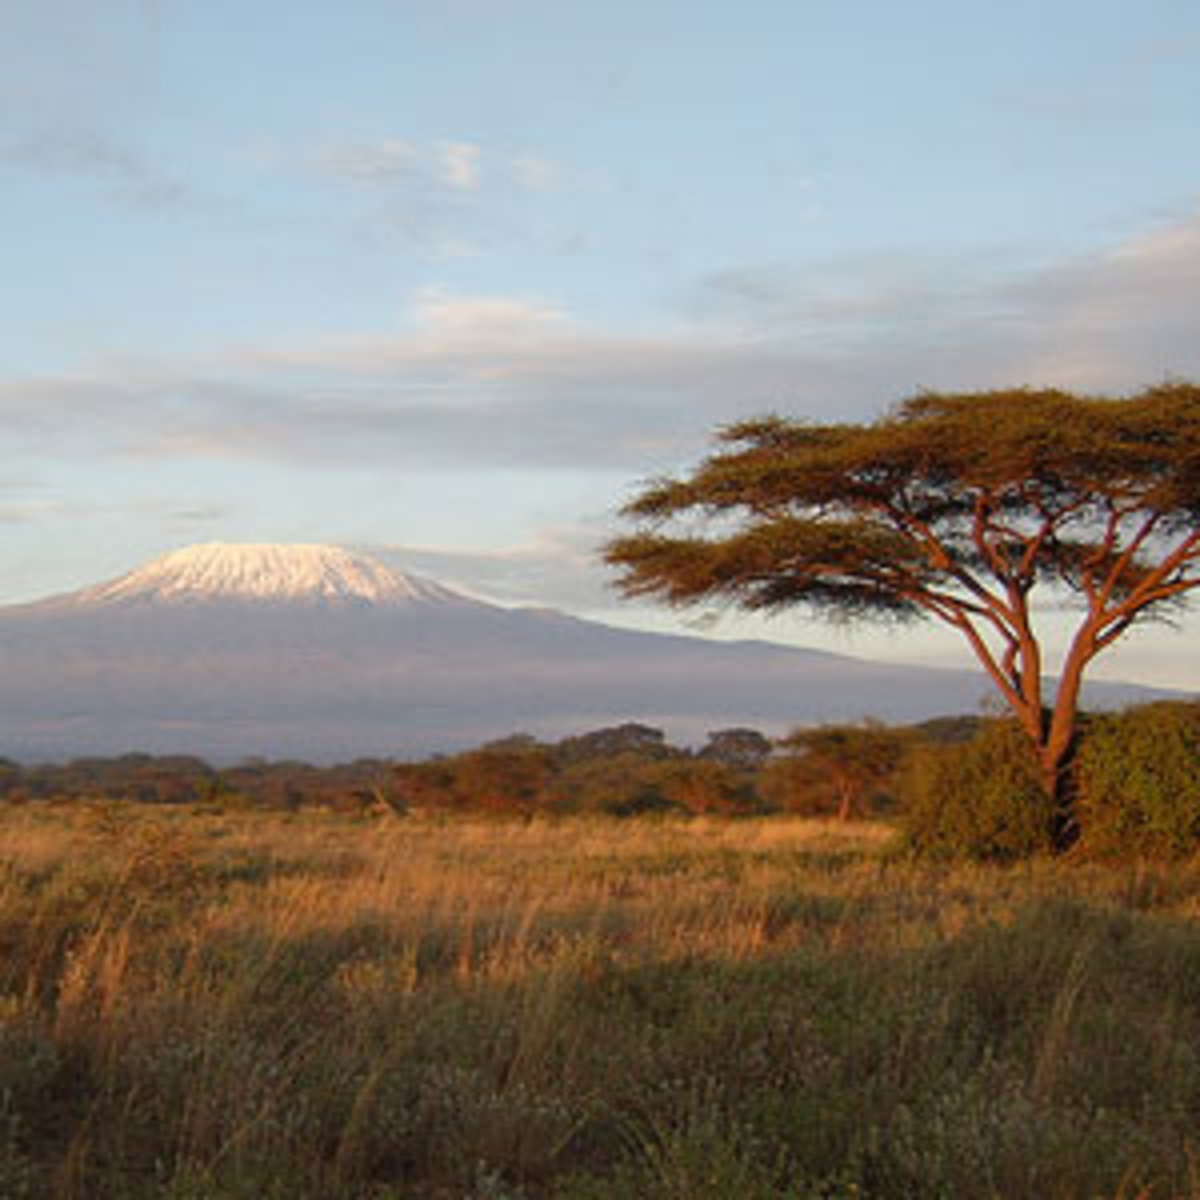 Kenyan game reserve with Mt Kilamanjaro (in Tanzania) in the distance. Kilamanjaro is 3 degrees south of the equator.